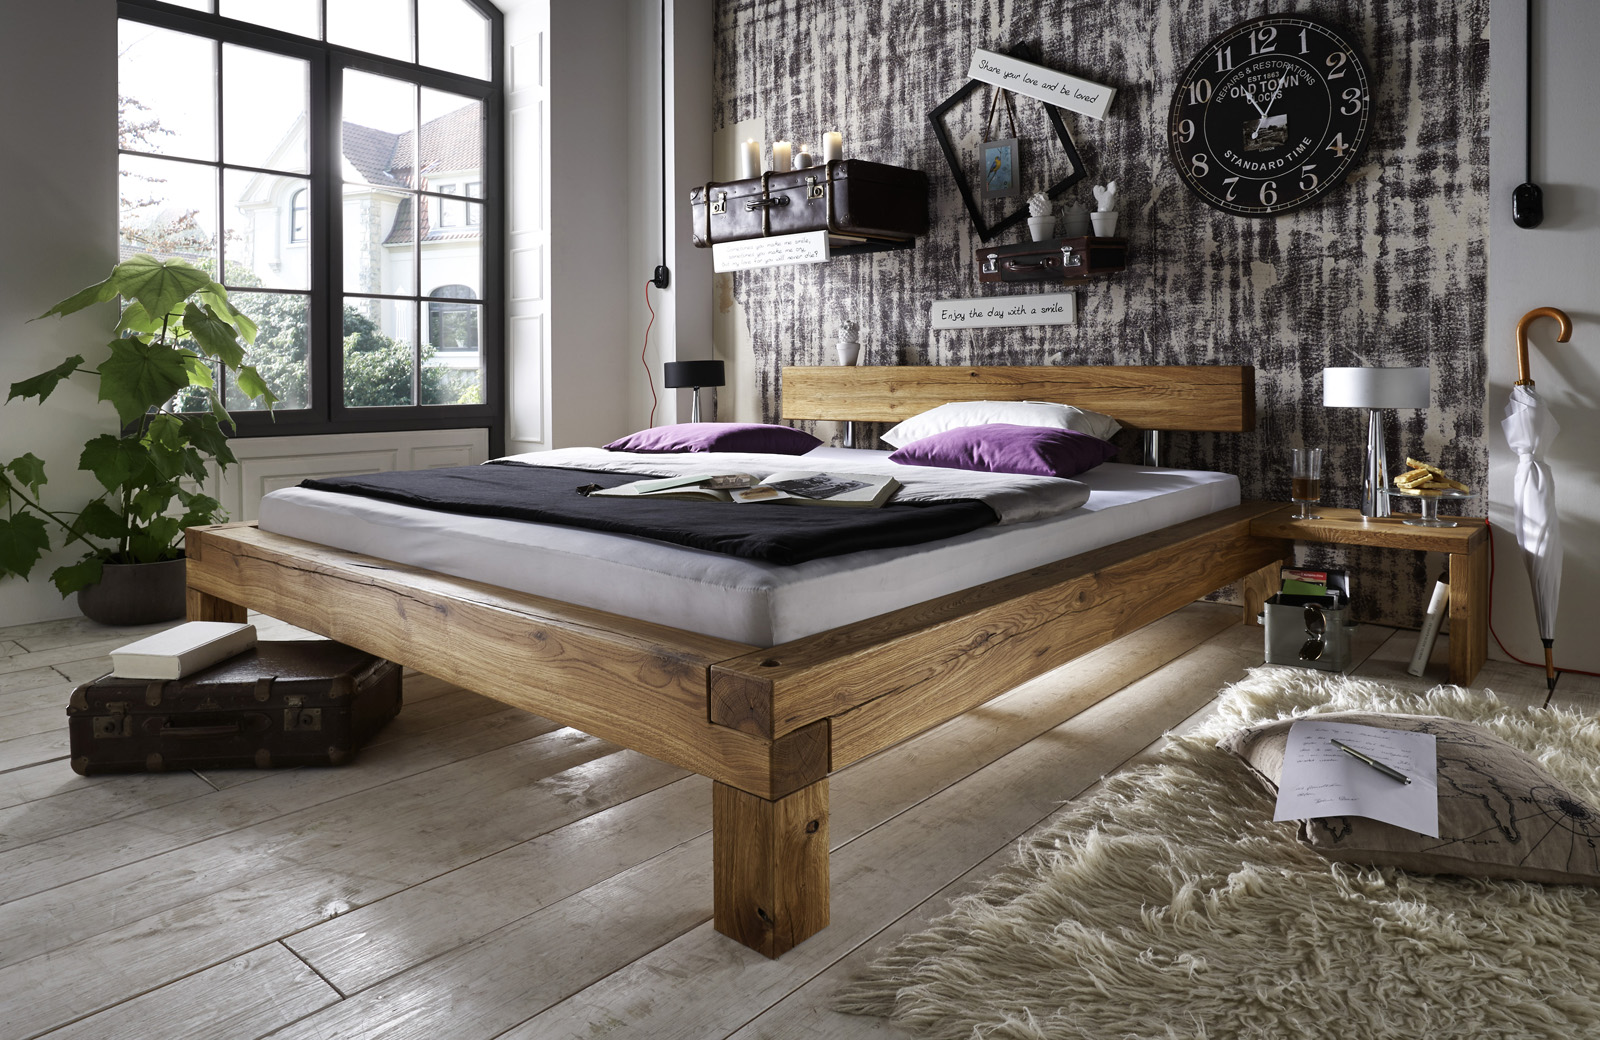 sam balkenbett ludo massiv holzbett wildeiche 160 x 200 cm. Black Bedroom Furniture Sets. Home Design Ideas